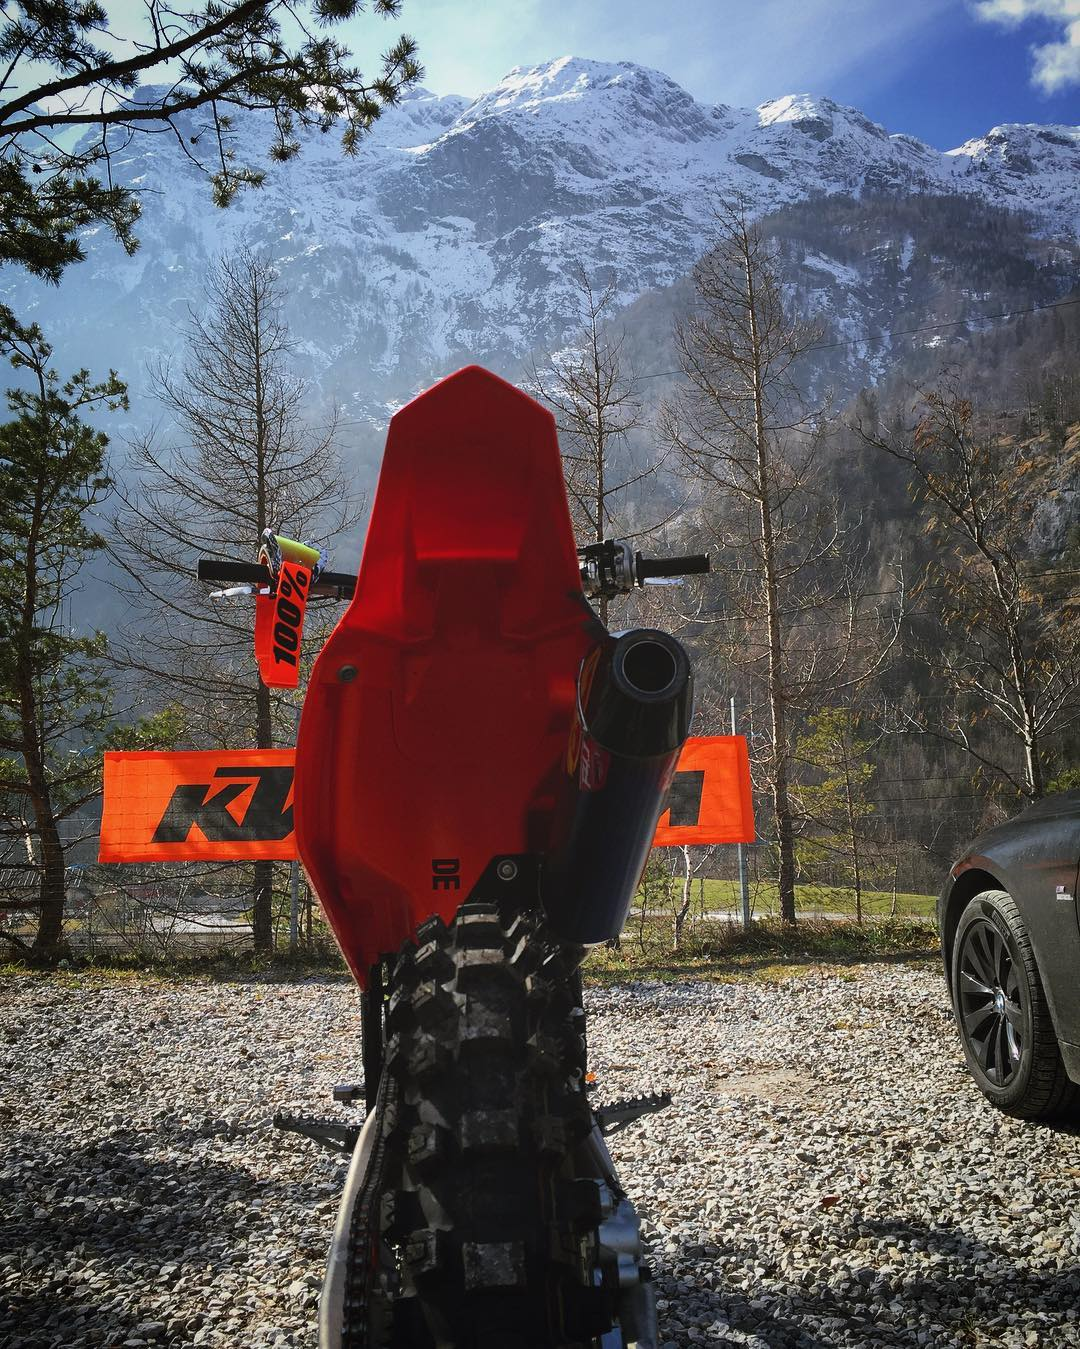 Majestic view @xbowlarena !. #Moto #MX #motocross #ktm #350sxf #fmfpower #bmw #msport #ride100percent